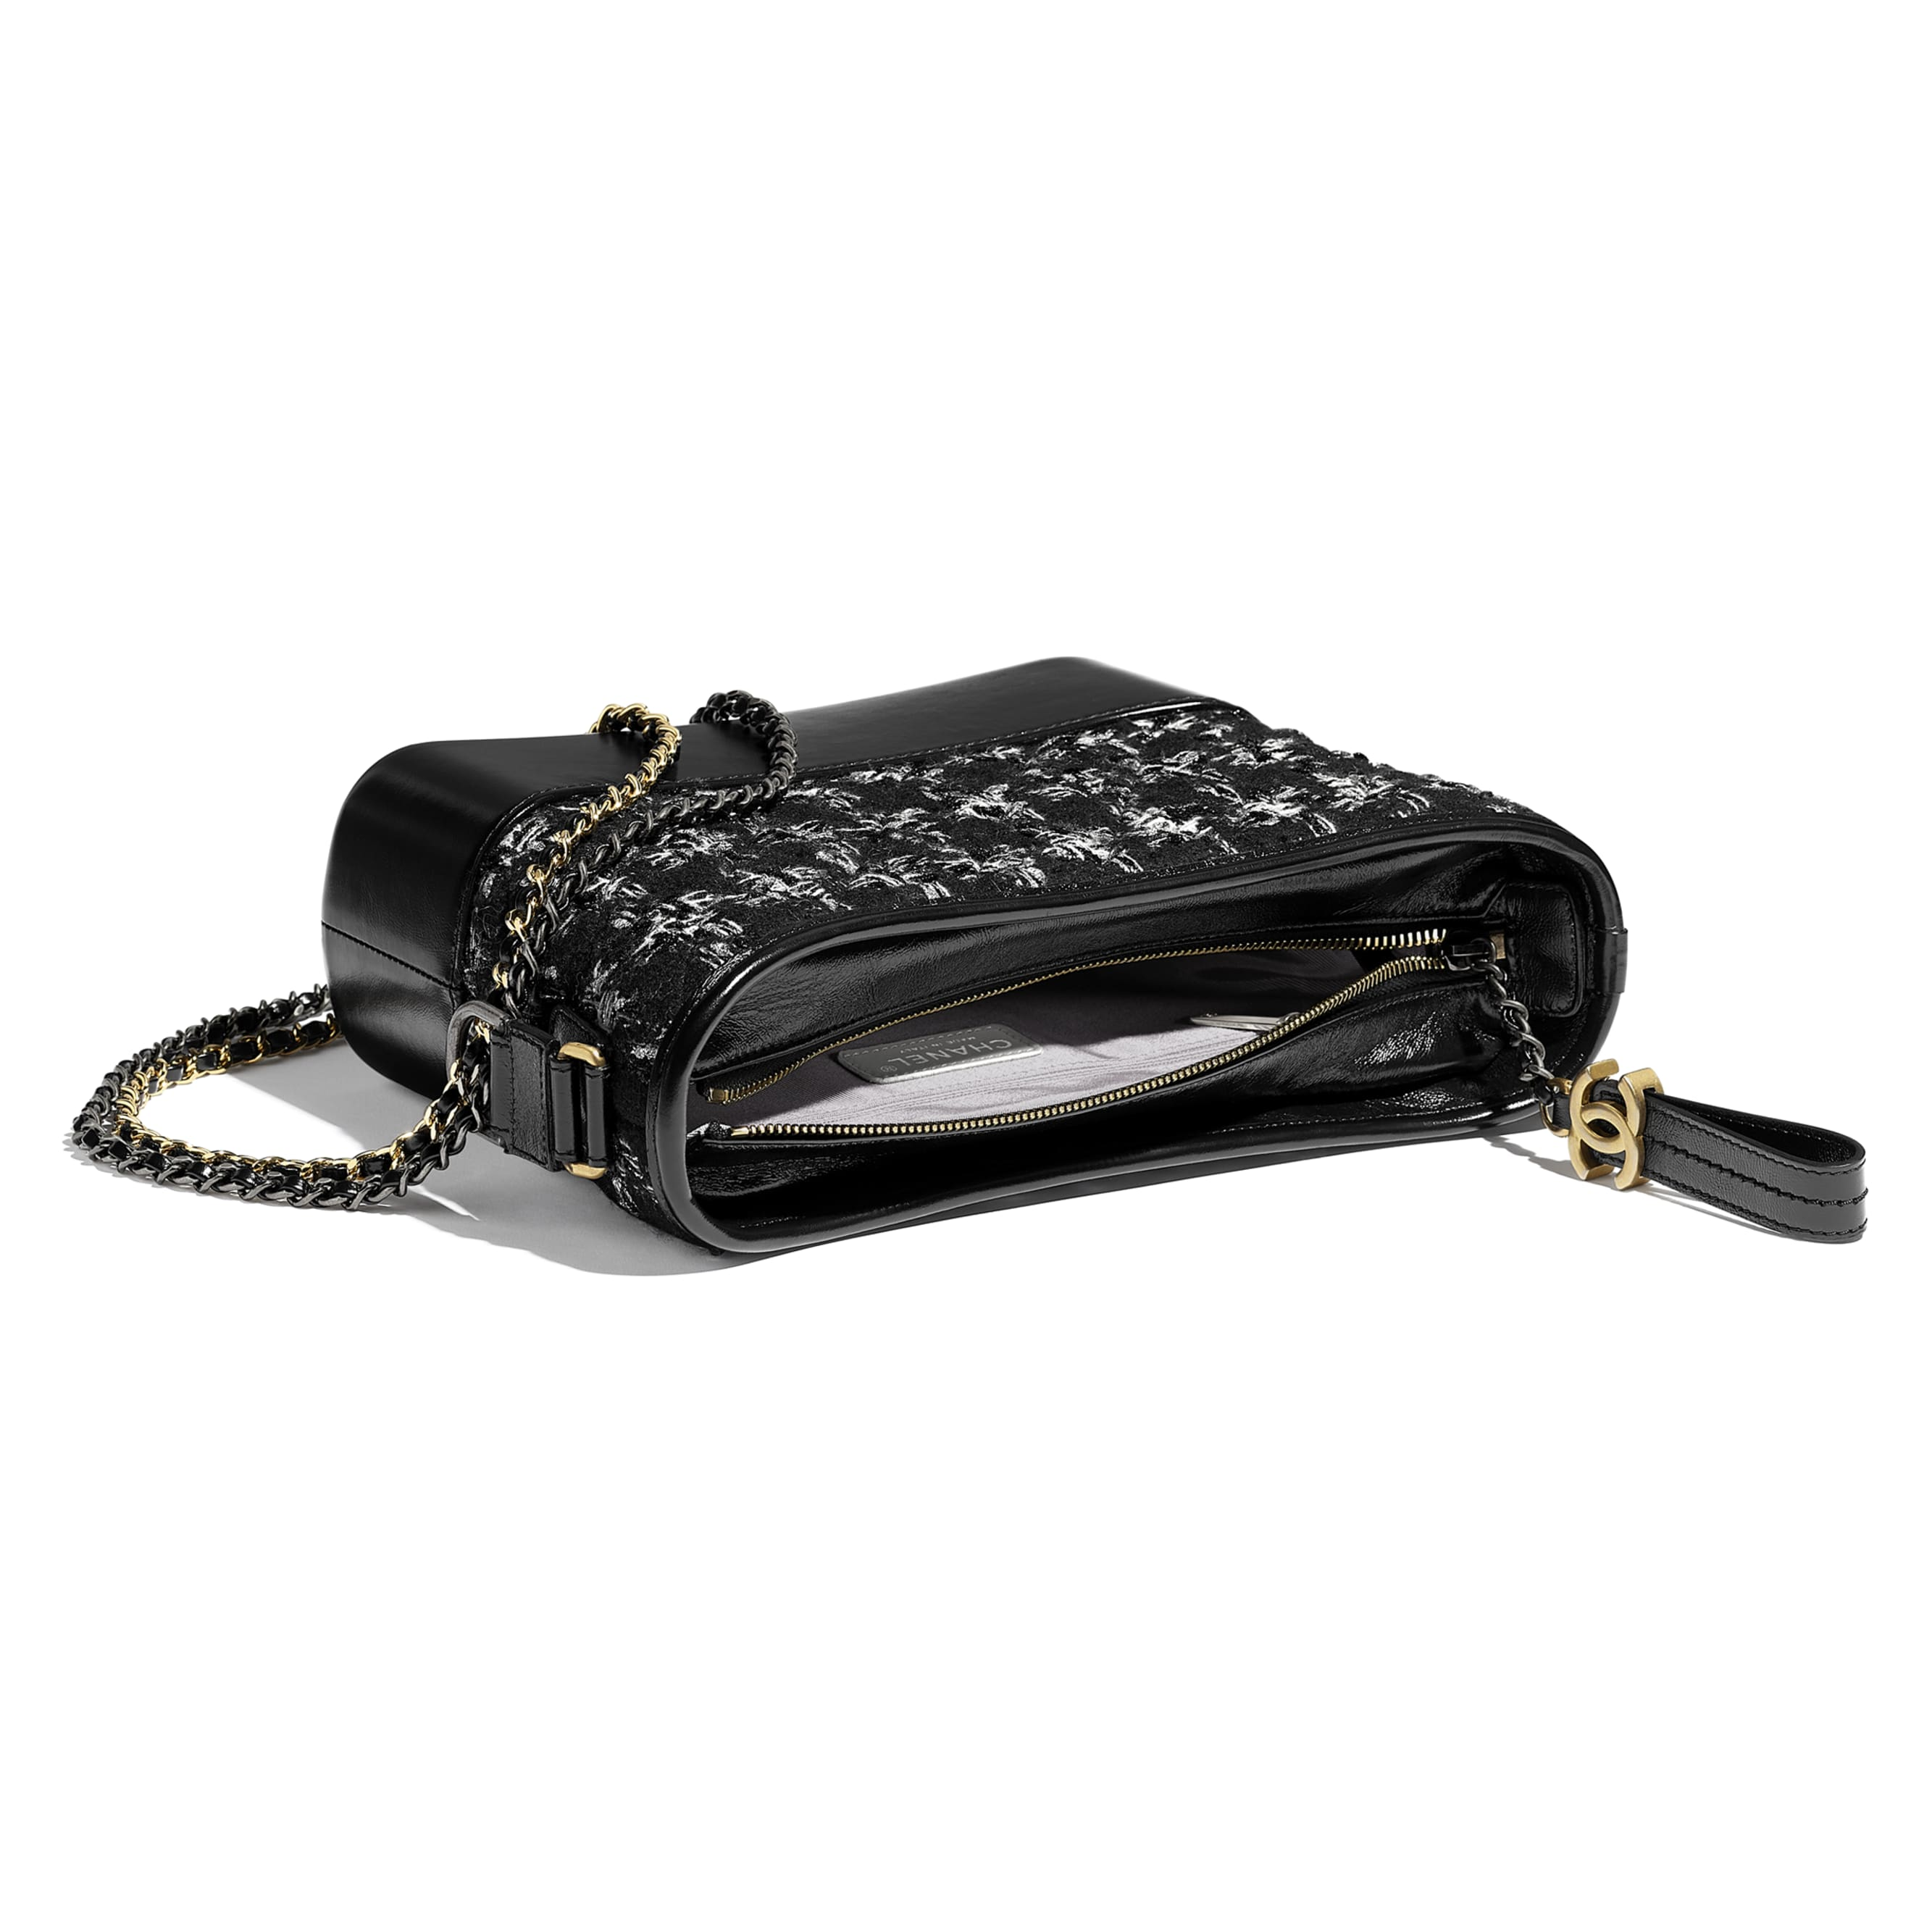 CHANEL'S GABRIELLE Hobo Handbag - Black, silver & ecru - Tweed, Calfskin, Gold-Tone, Silver-Tone & Ruthenium-Finish Metal - CHANEL - Other view - see standard sized version